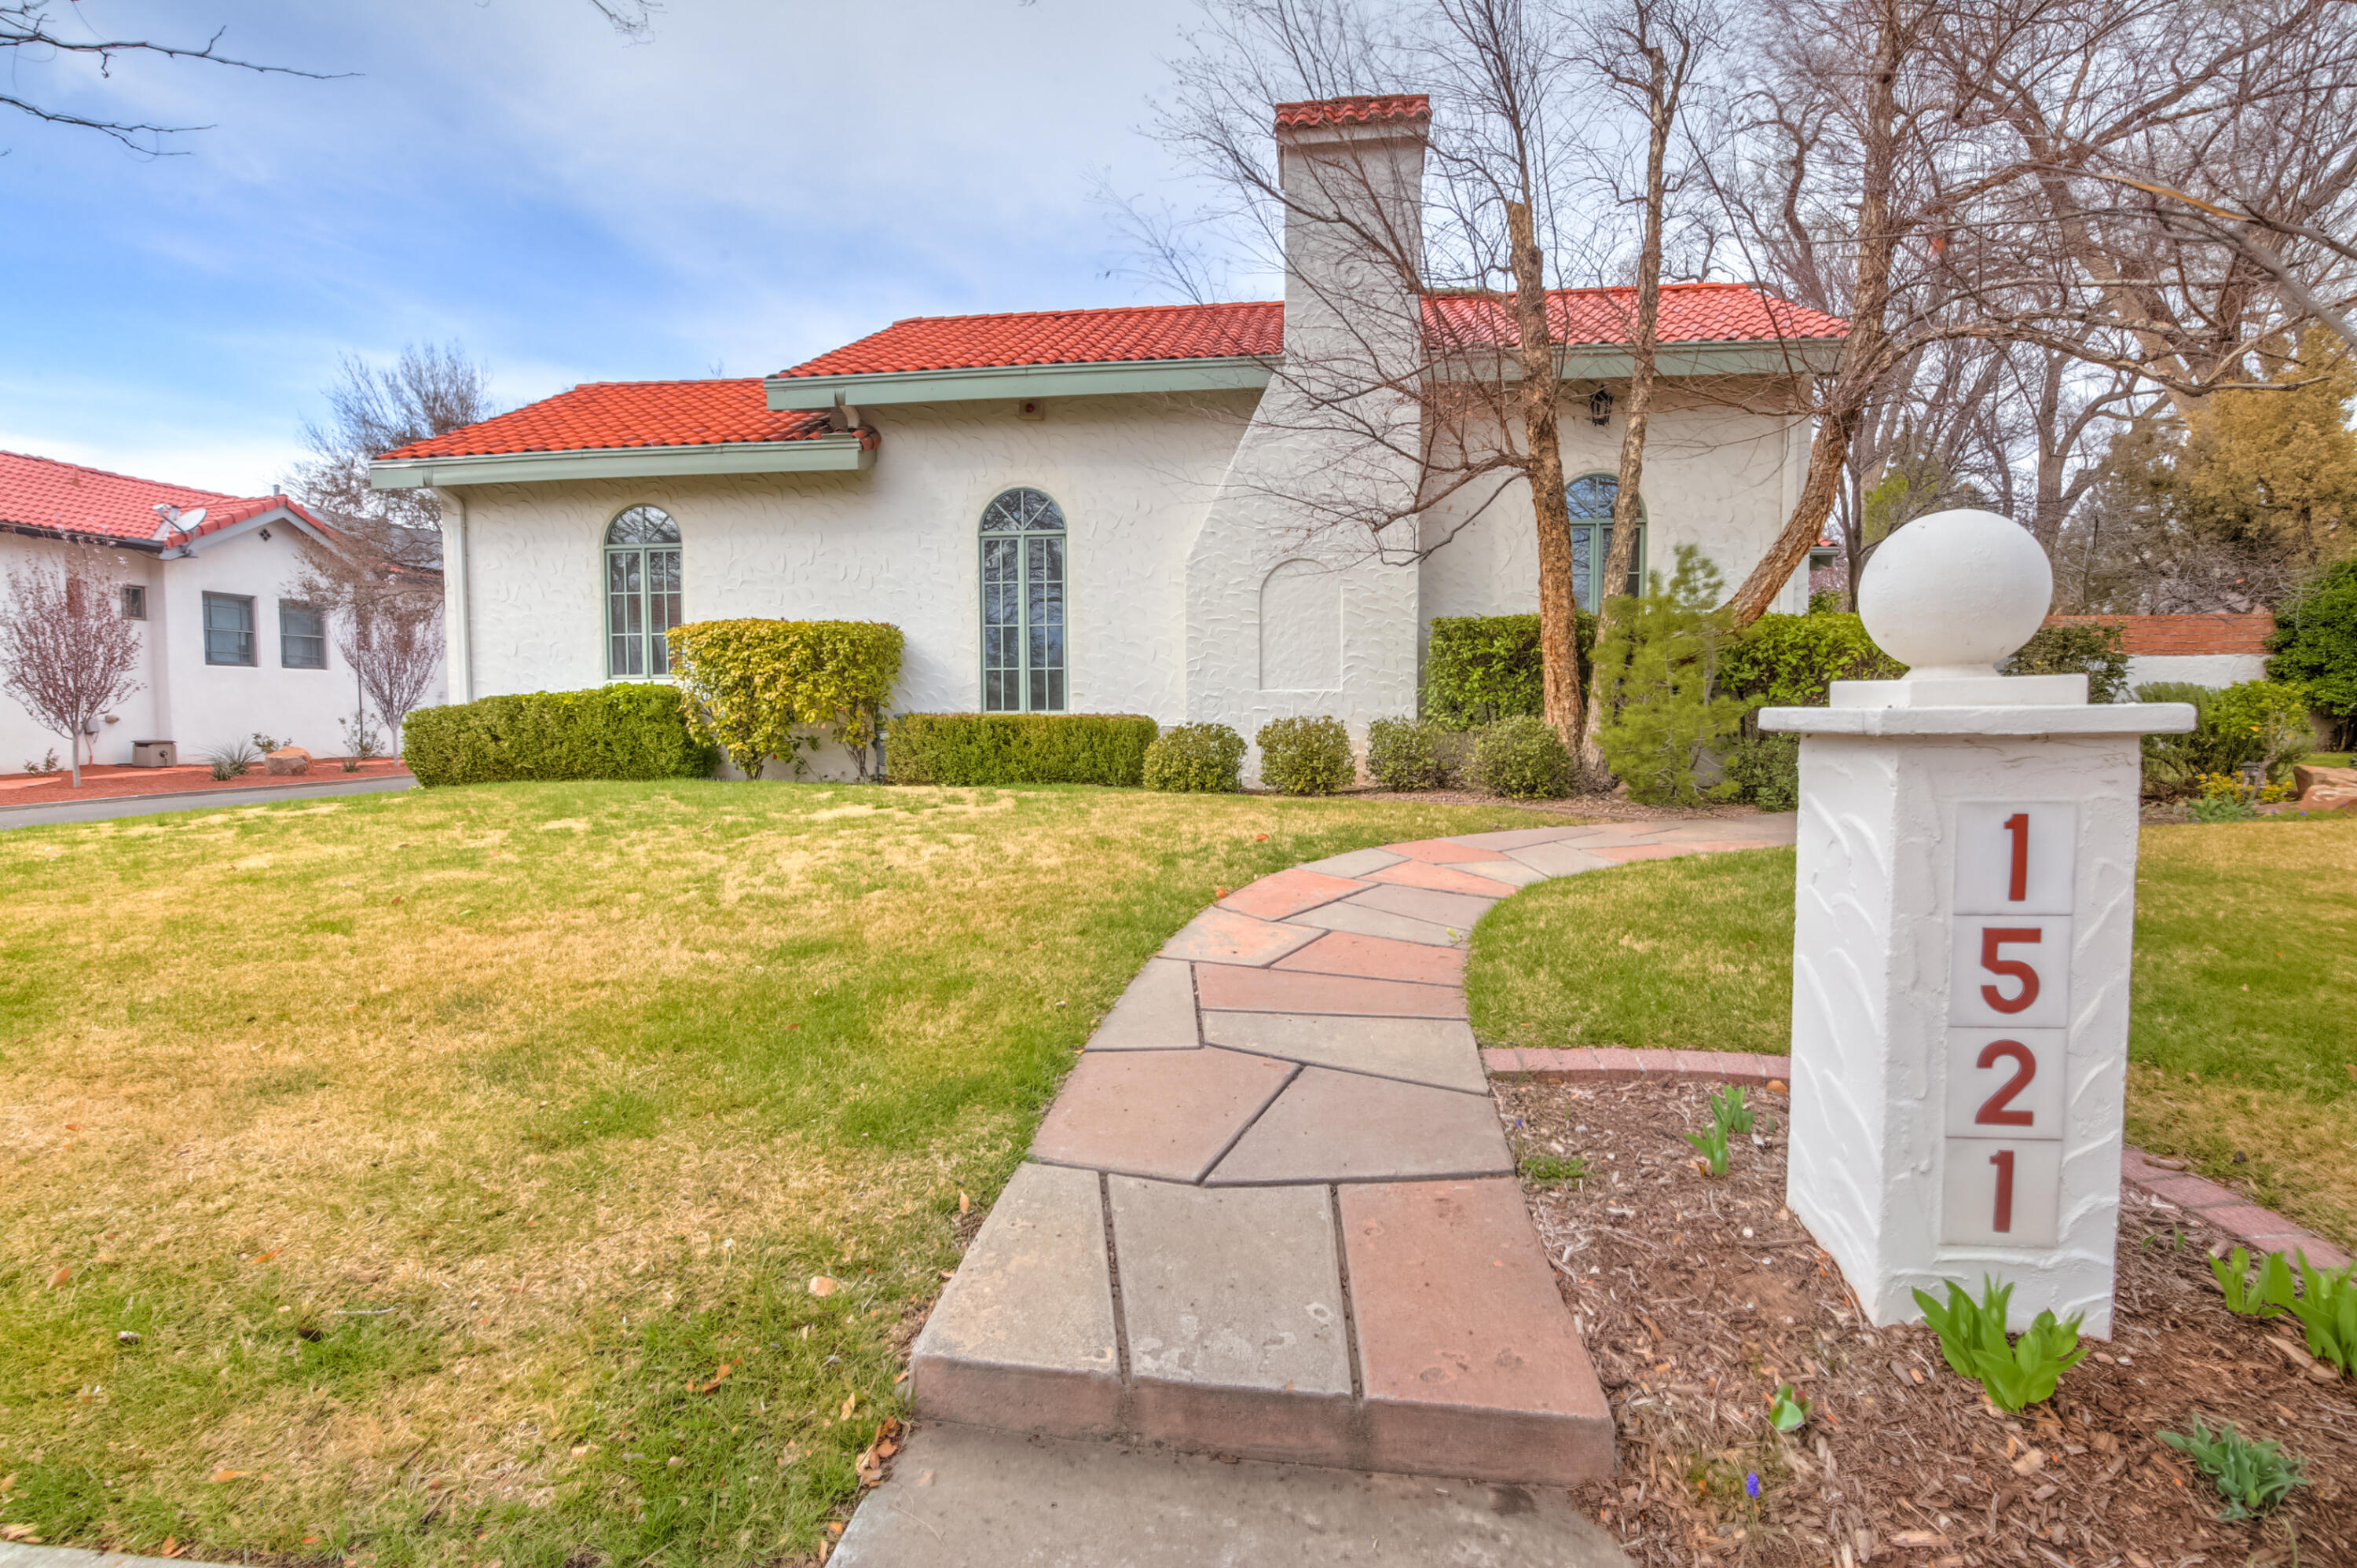 Absolutely stunning, a gem of the Albuquerque Country Club neighborhood. Constructed in 1931 on a spacious .35 acre lot with mature landscaping & trees. Very nicely appointed & updated while preserving many of the original details.  The home features 3,470 square feet on two levels plus a detached two car garage. The iconic arched window in the living space allows a flood of natural light & an open and airy feel with a custom fireplace. Just off the living room is the formal dining room large enough to host a number of guests. Original hardwood floors are beautifully cared for. The gourmet kitchen features stainless appliances, solid surface counters and custom cabinets. The daylight basement has a family room, bedroom, full bath and utility room. Way to many details to list, a must see!